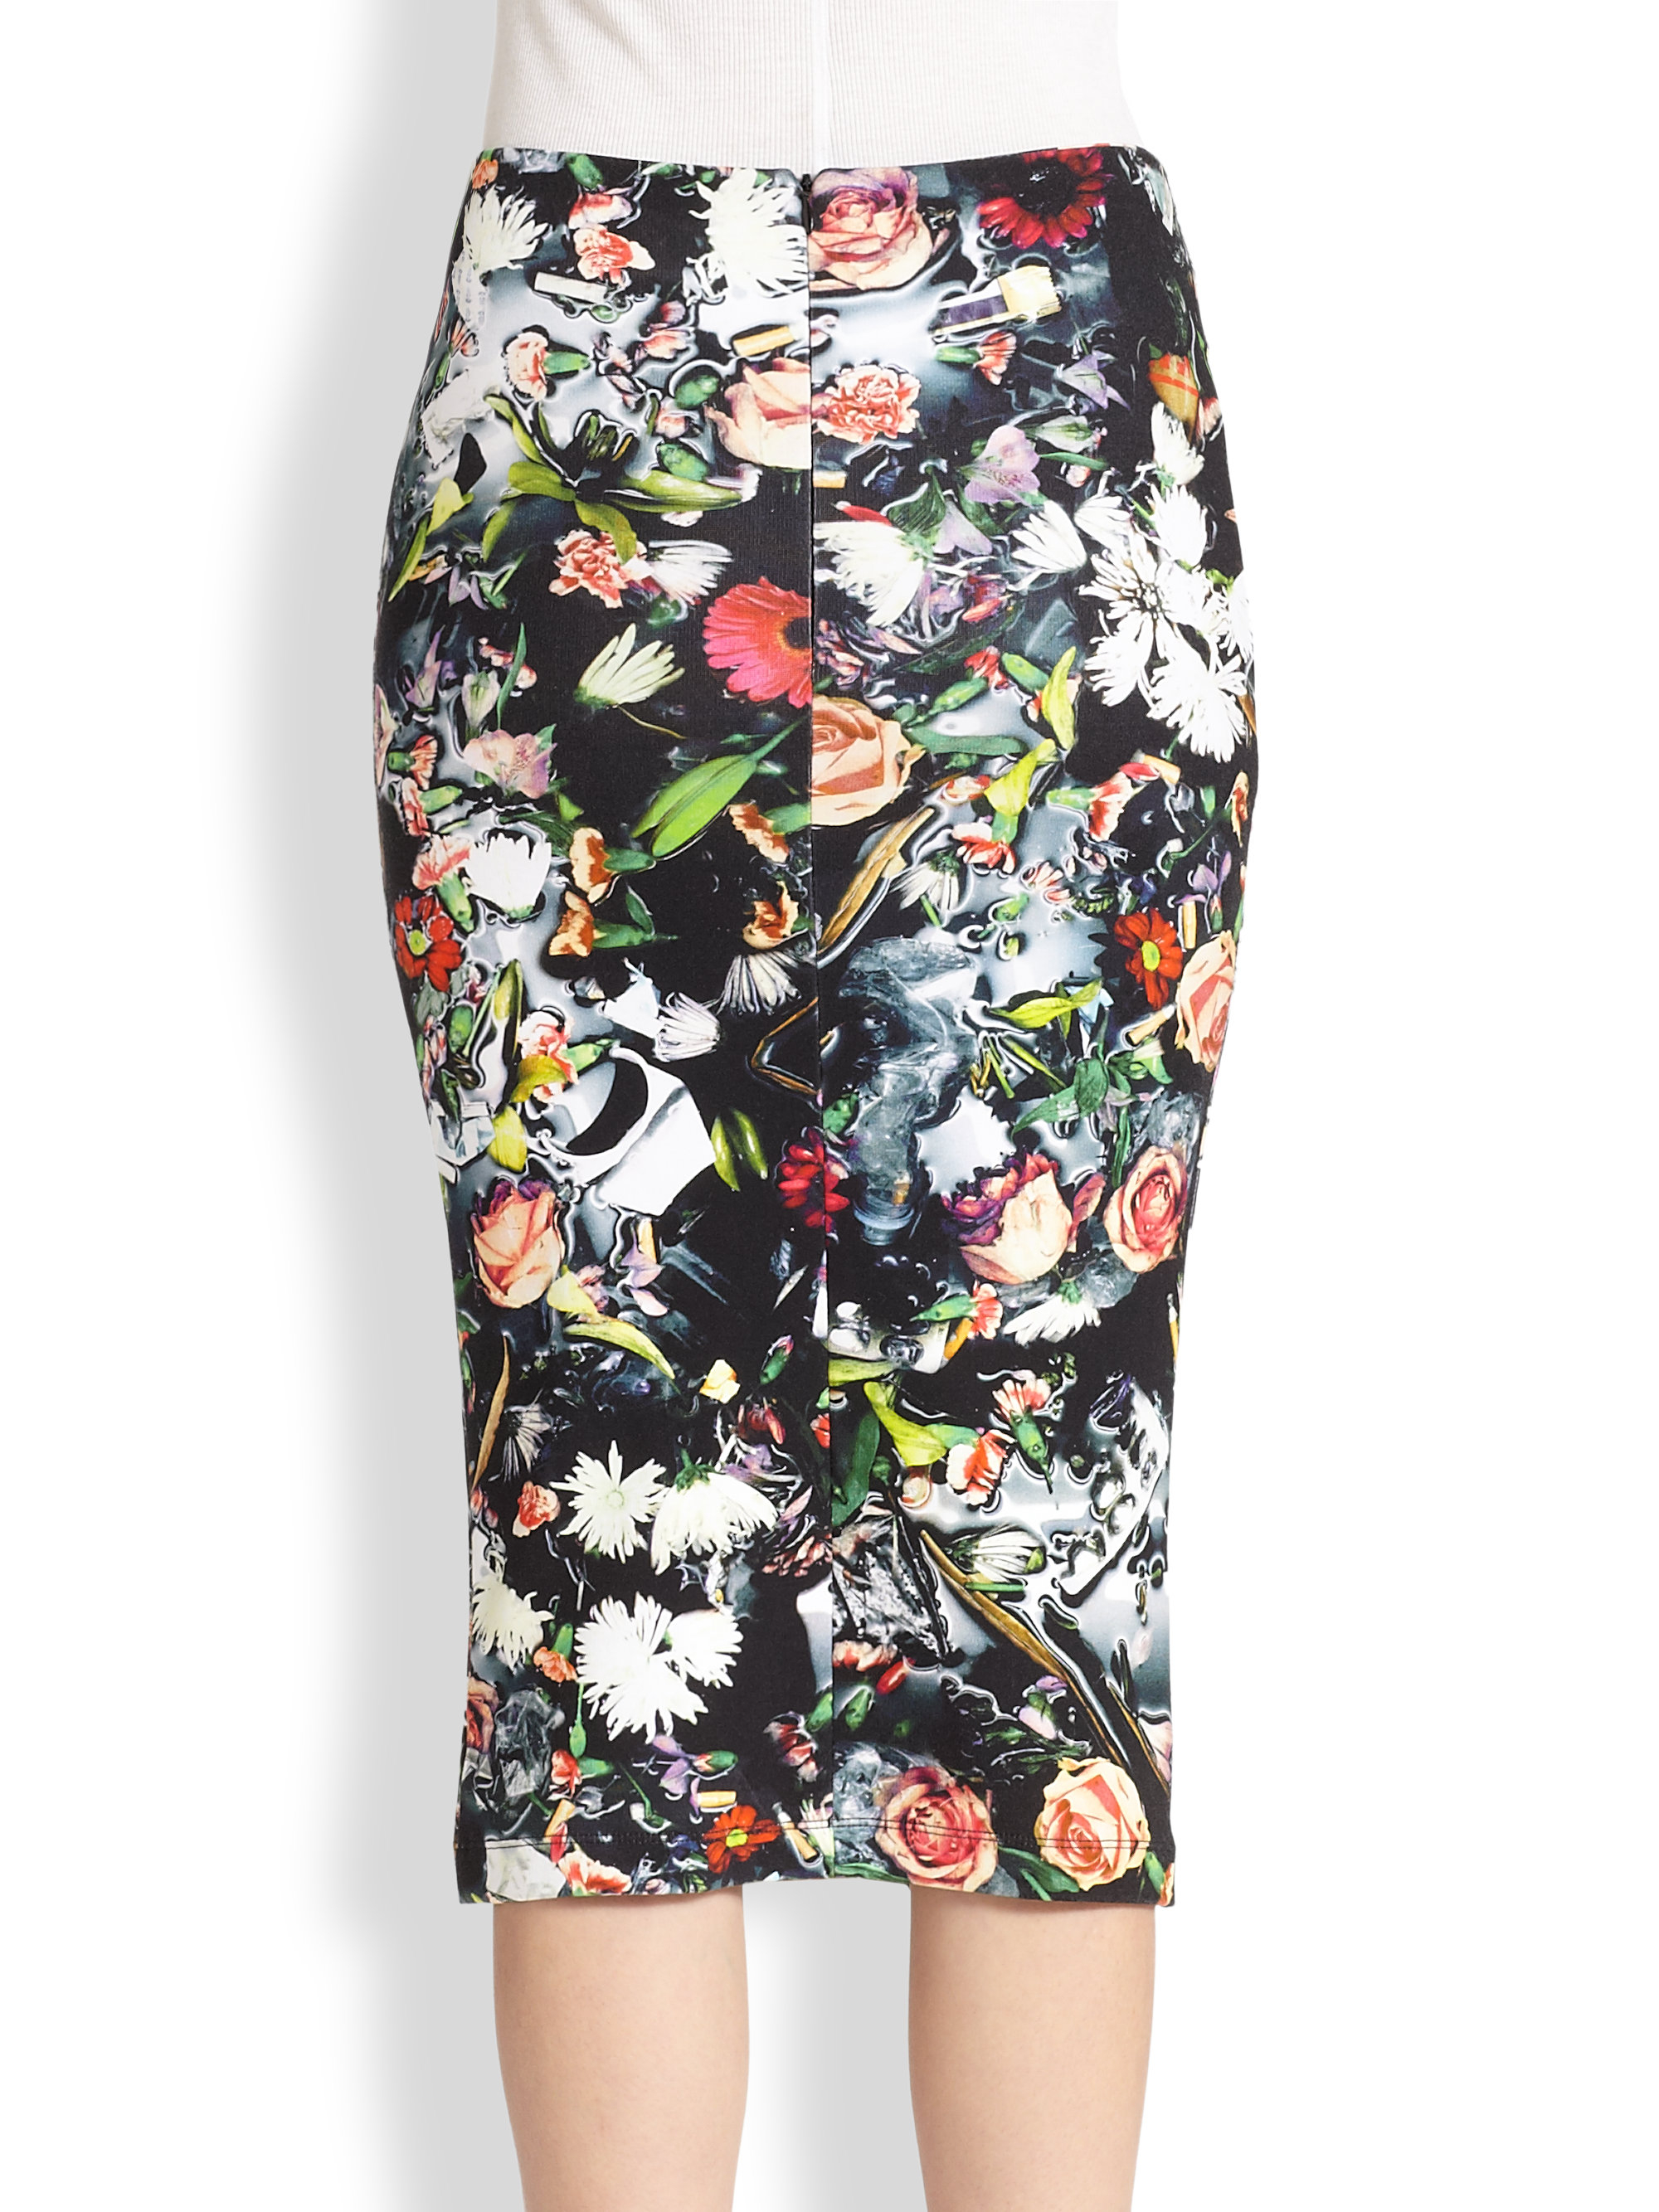 Mcq Floral-Print Stretch Cotton Jersey Pencil Skirt in Black | Lyst